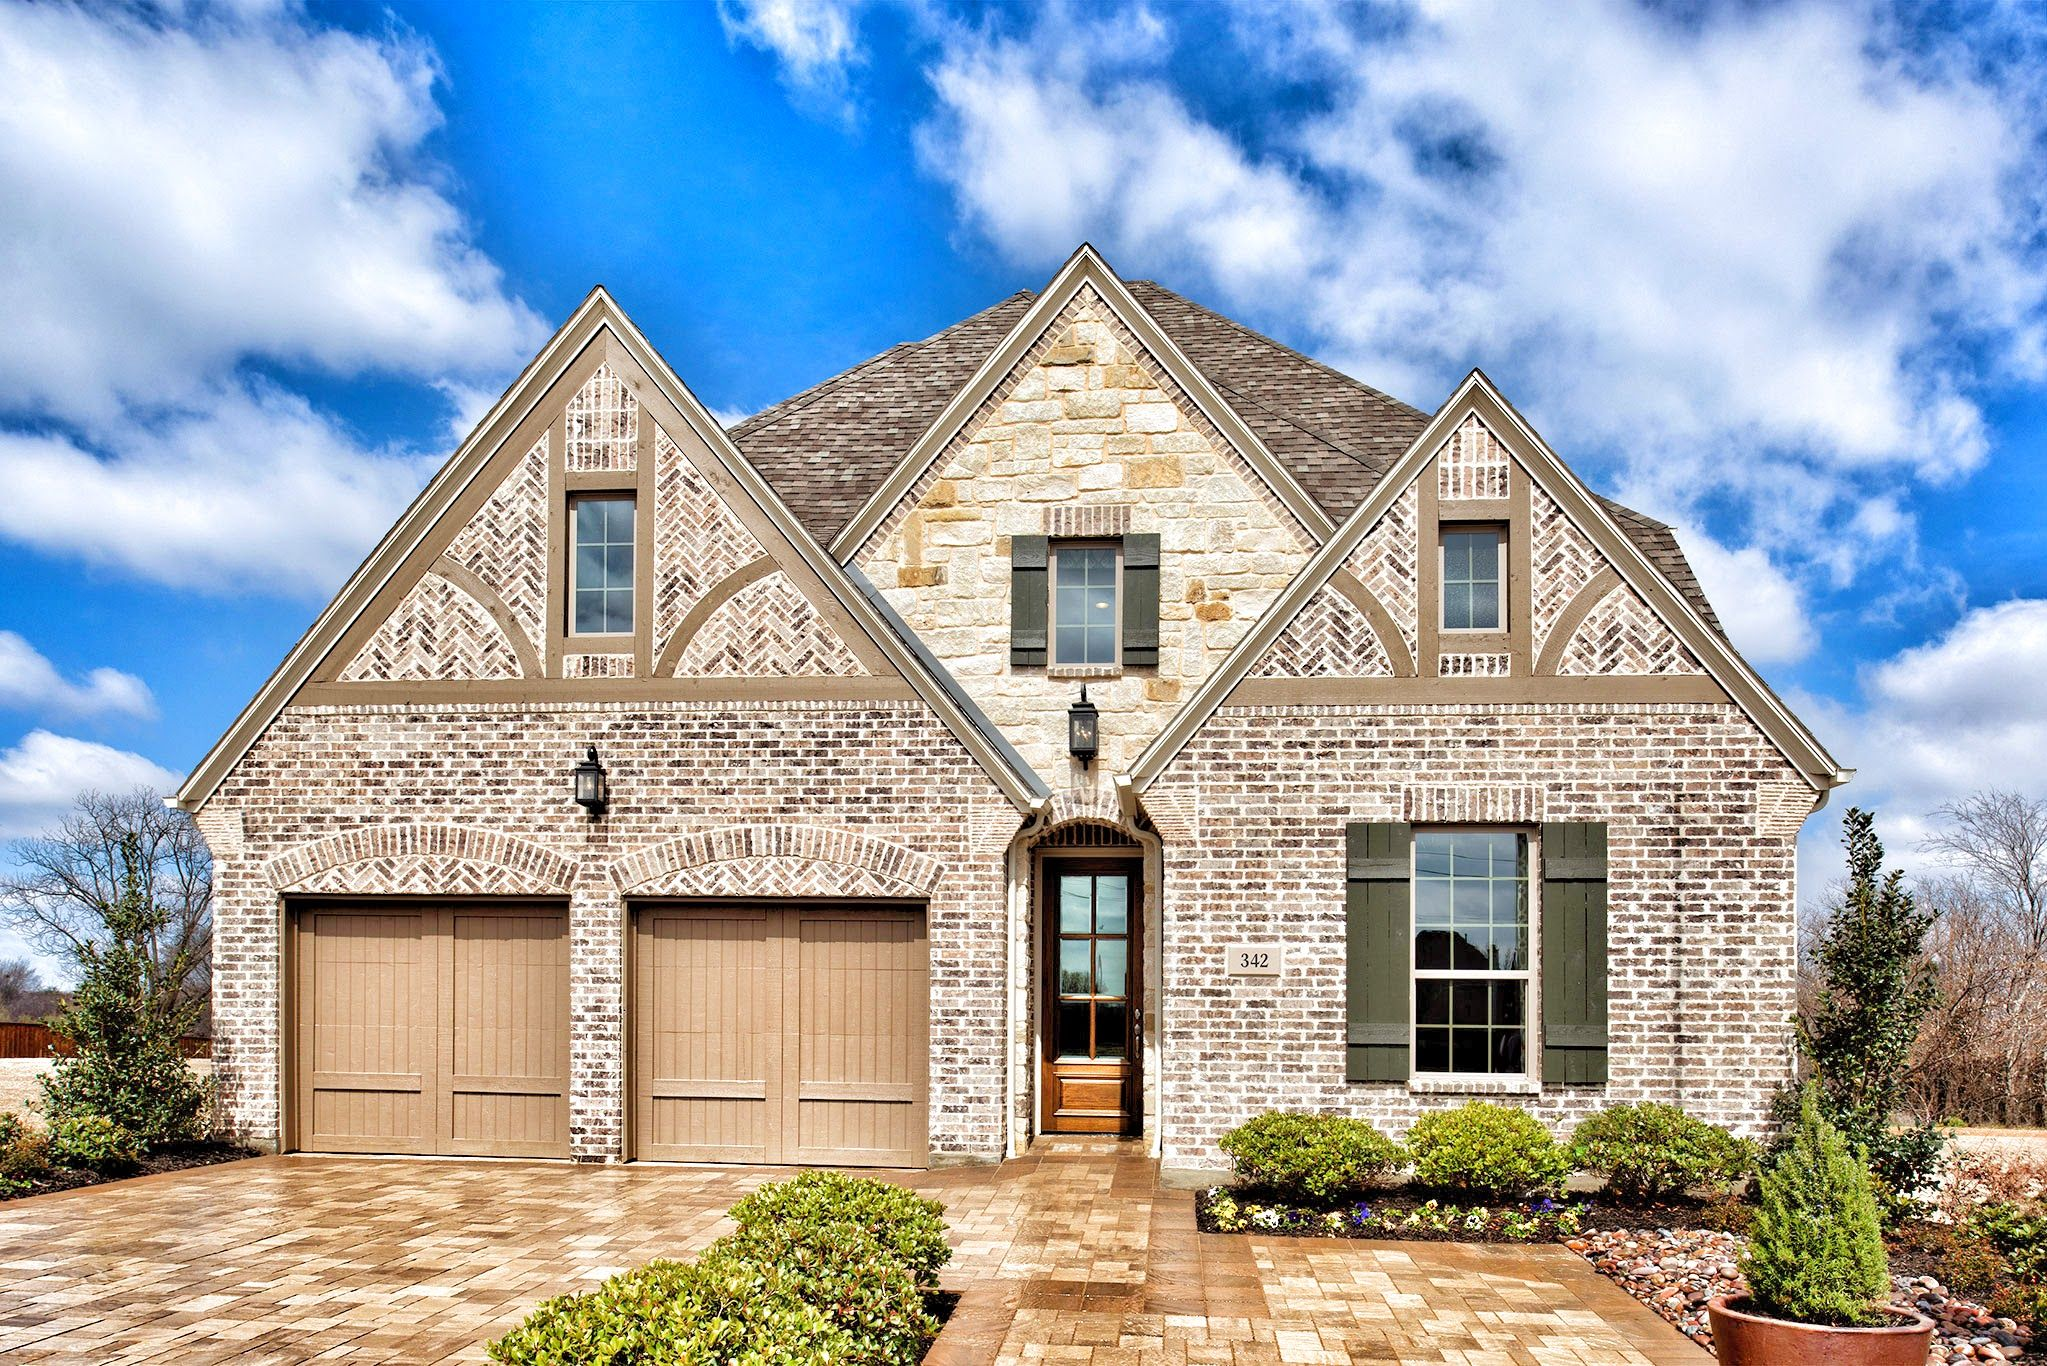 Beautiful #home by Darling Homes in Glade Hill. #homedesign #homeexterior #newhome